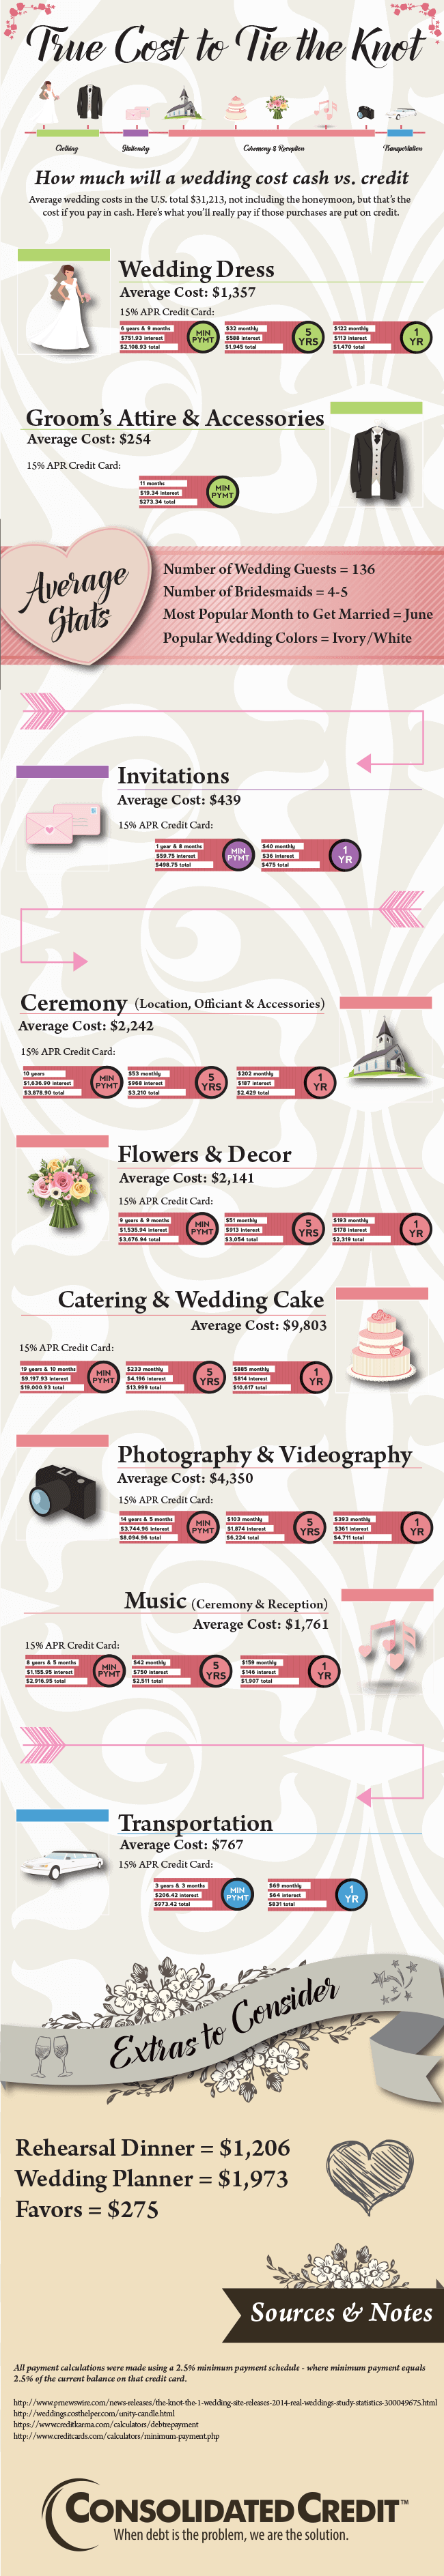 Graphic displaying the real wedding budget cost with interest added